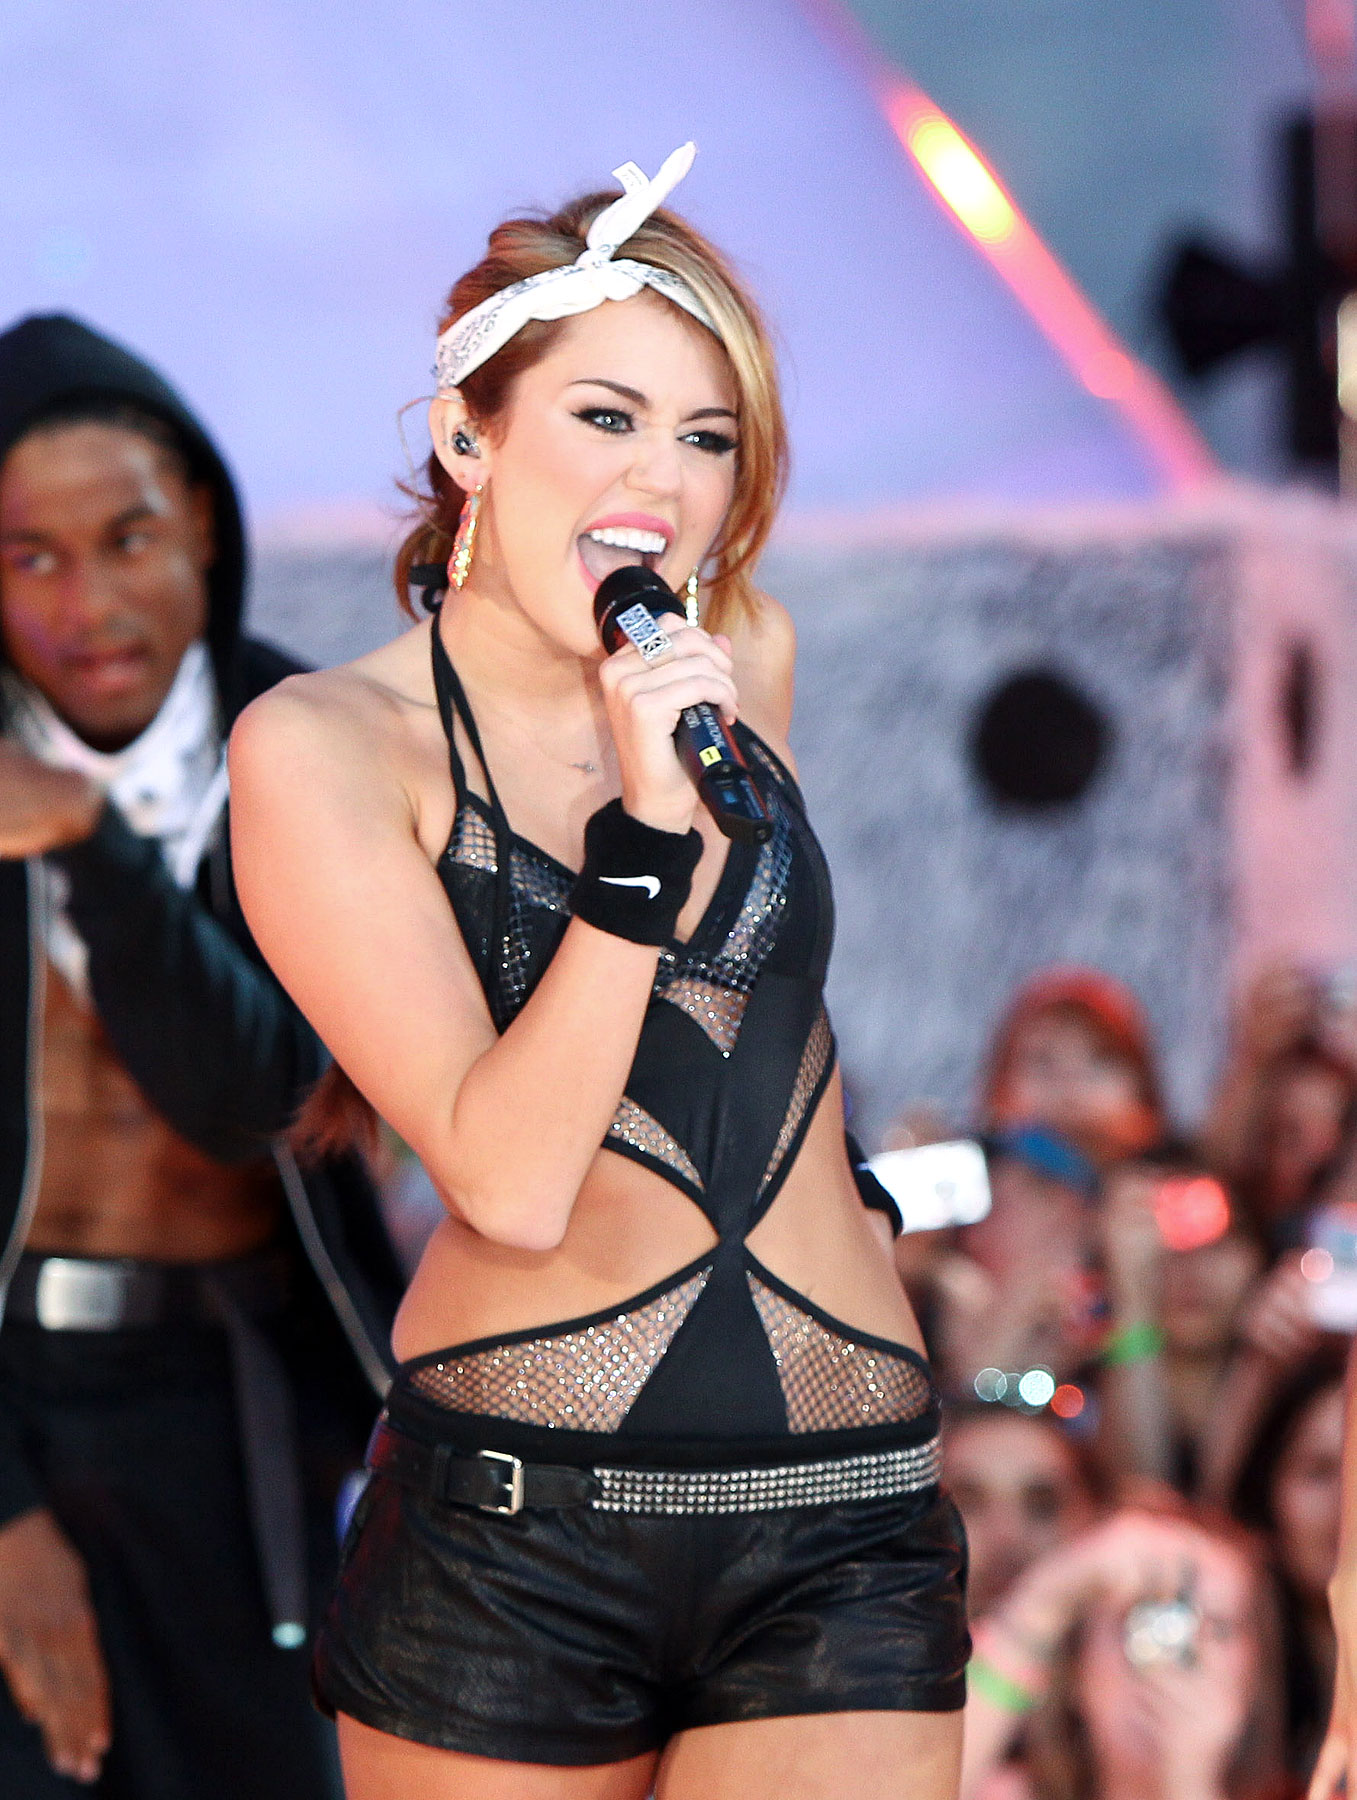 Was Miley Cyrus Too Sexy At The MuchMusic Awards? (PHOTOS)